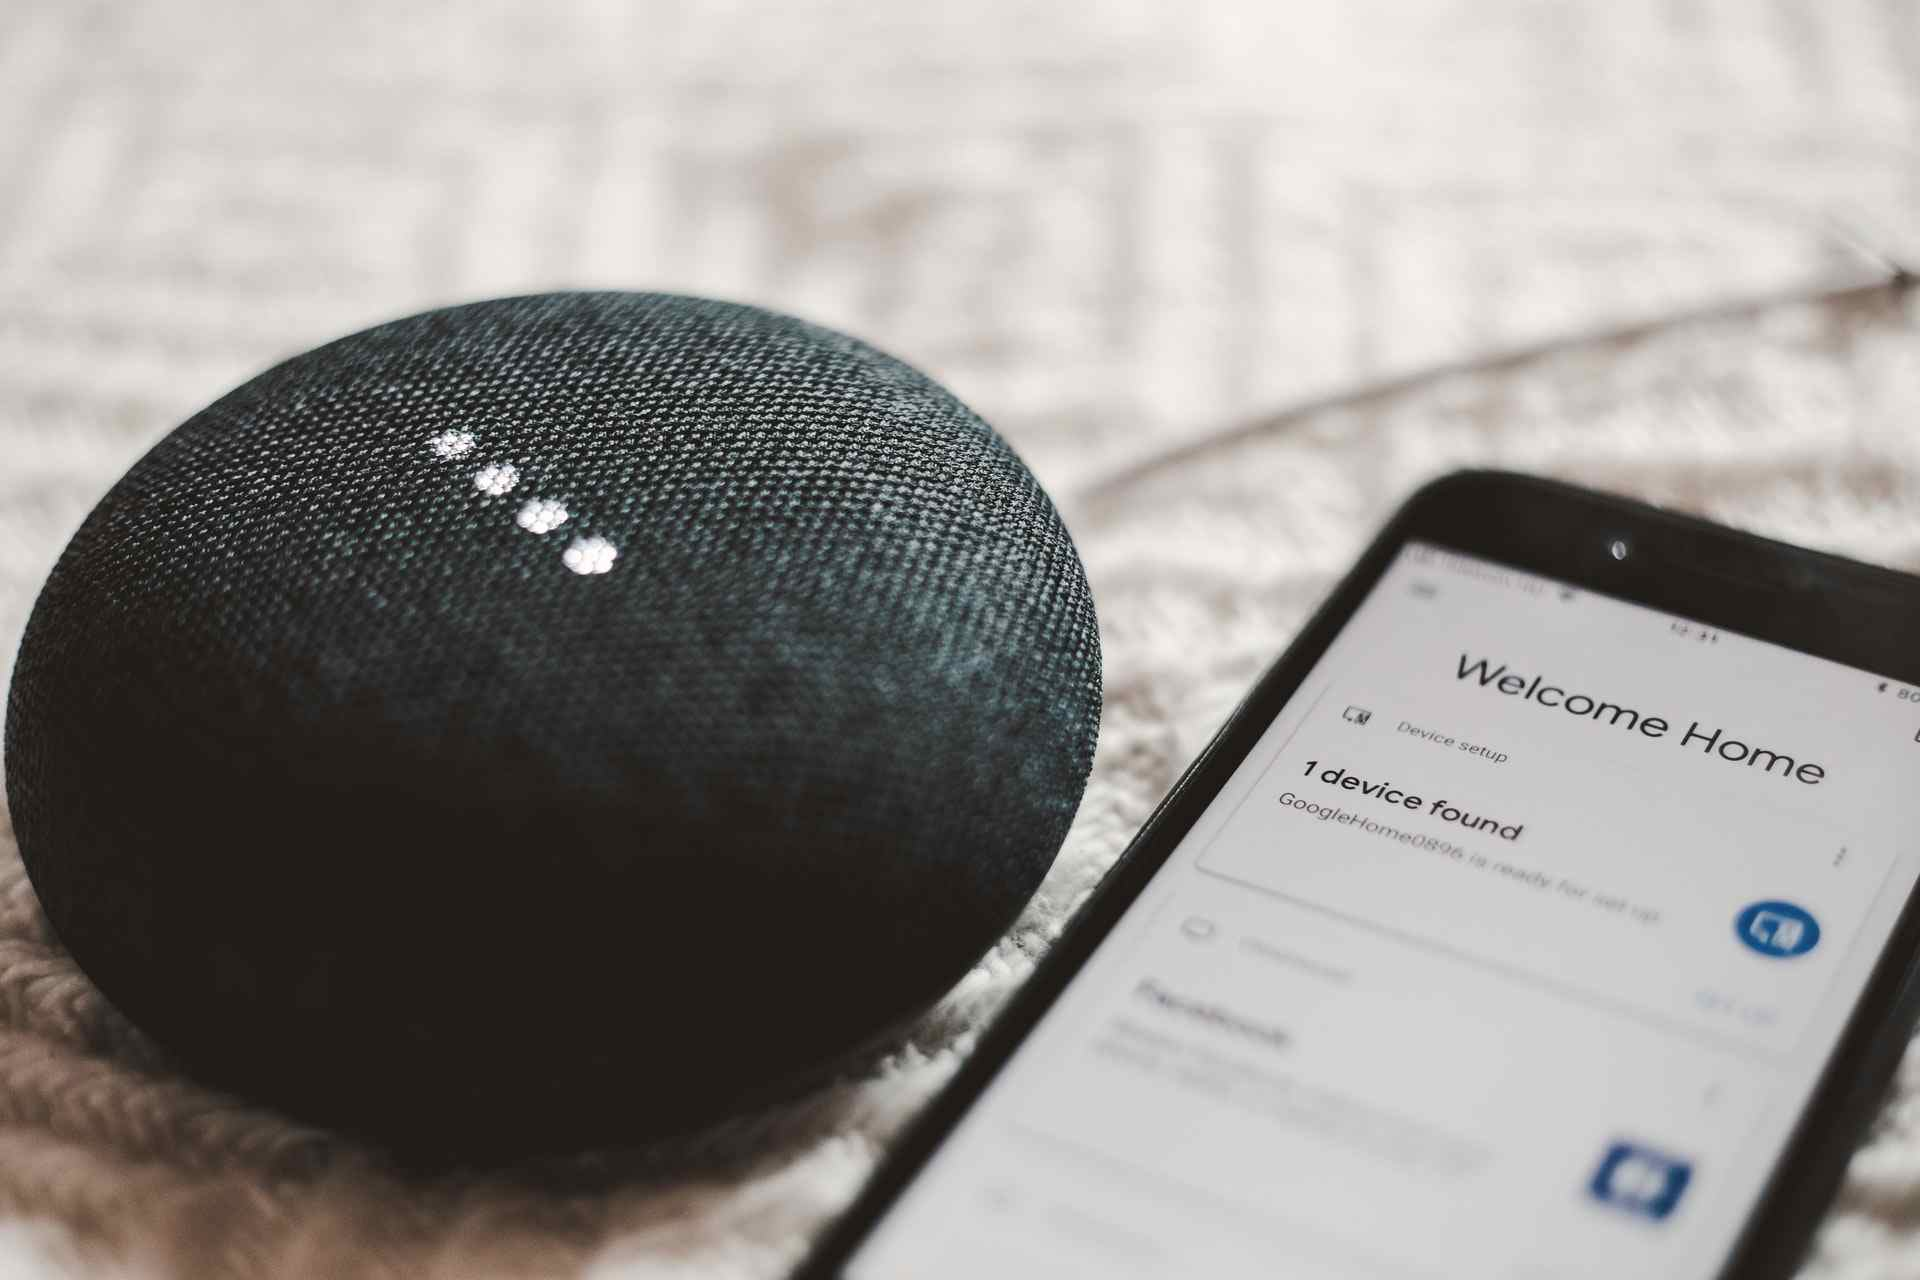 Voice Assistants are popular KI devices and need to handle Natural Language Processing